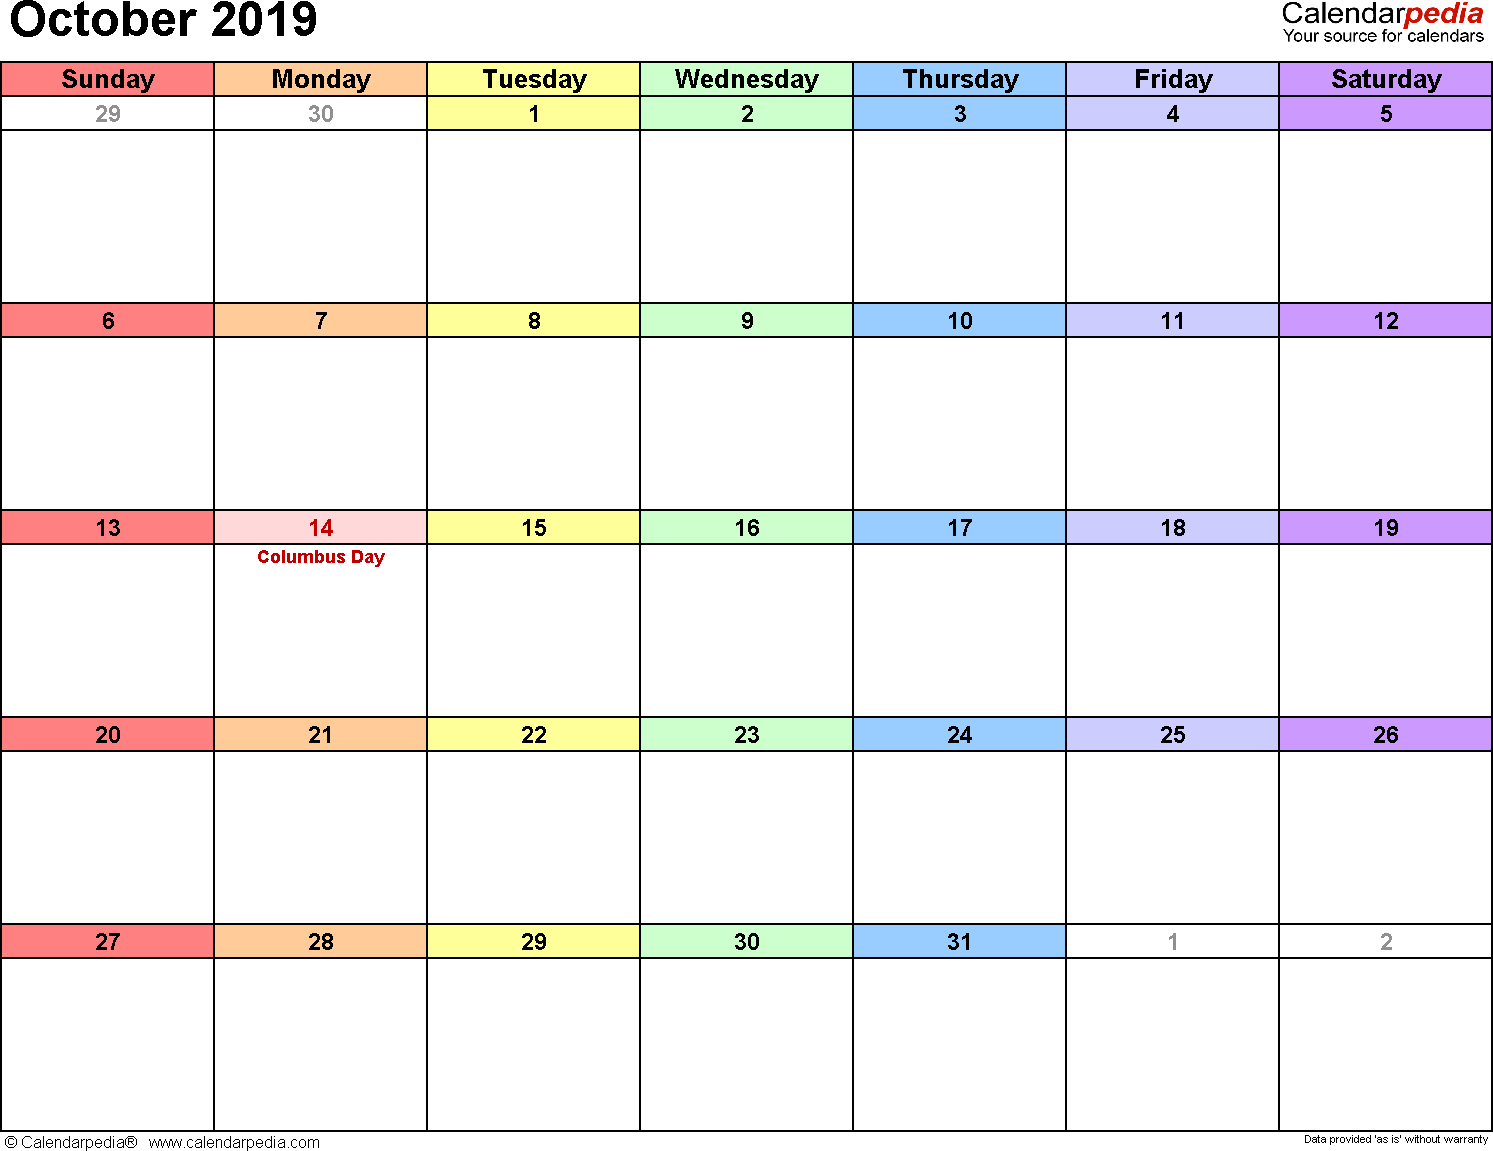 October 2019 Calendars For Word, Excel & Pdf within Calendar Blanks August Through October 2019